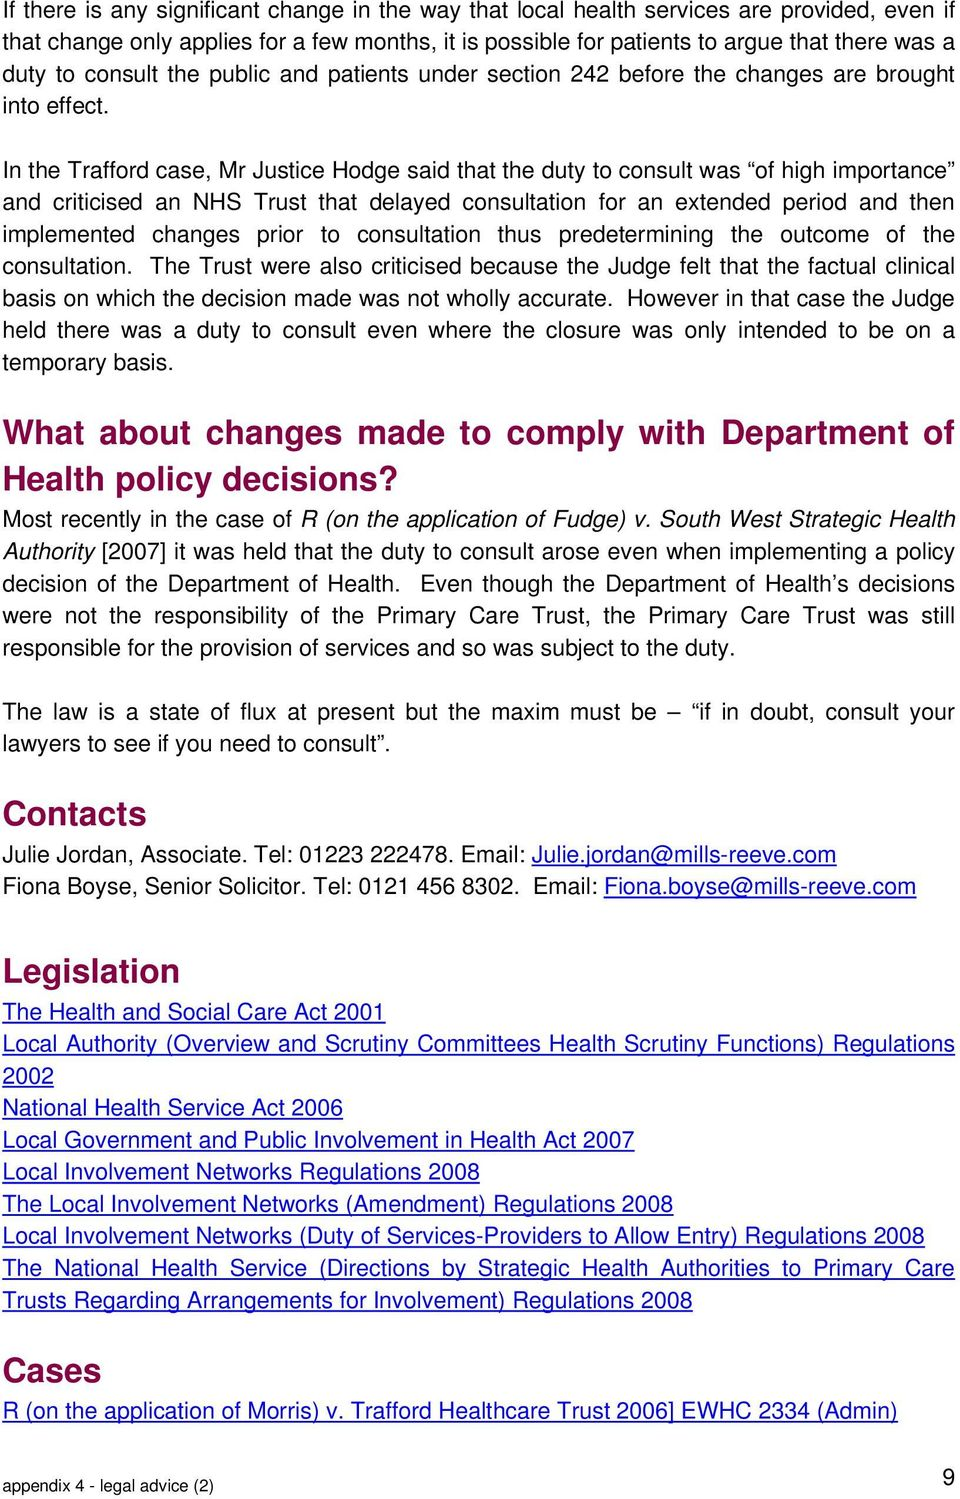 In the Trafford case, Mr Justice Hodge said that the duty to consult was of high importance and criticised an NHS Trust that delayed consultation for an extended period and then implemented changes